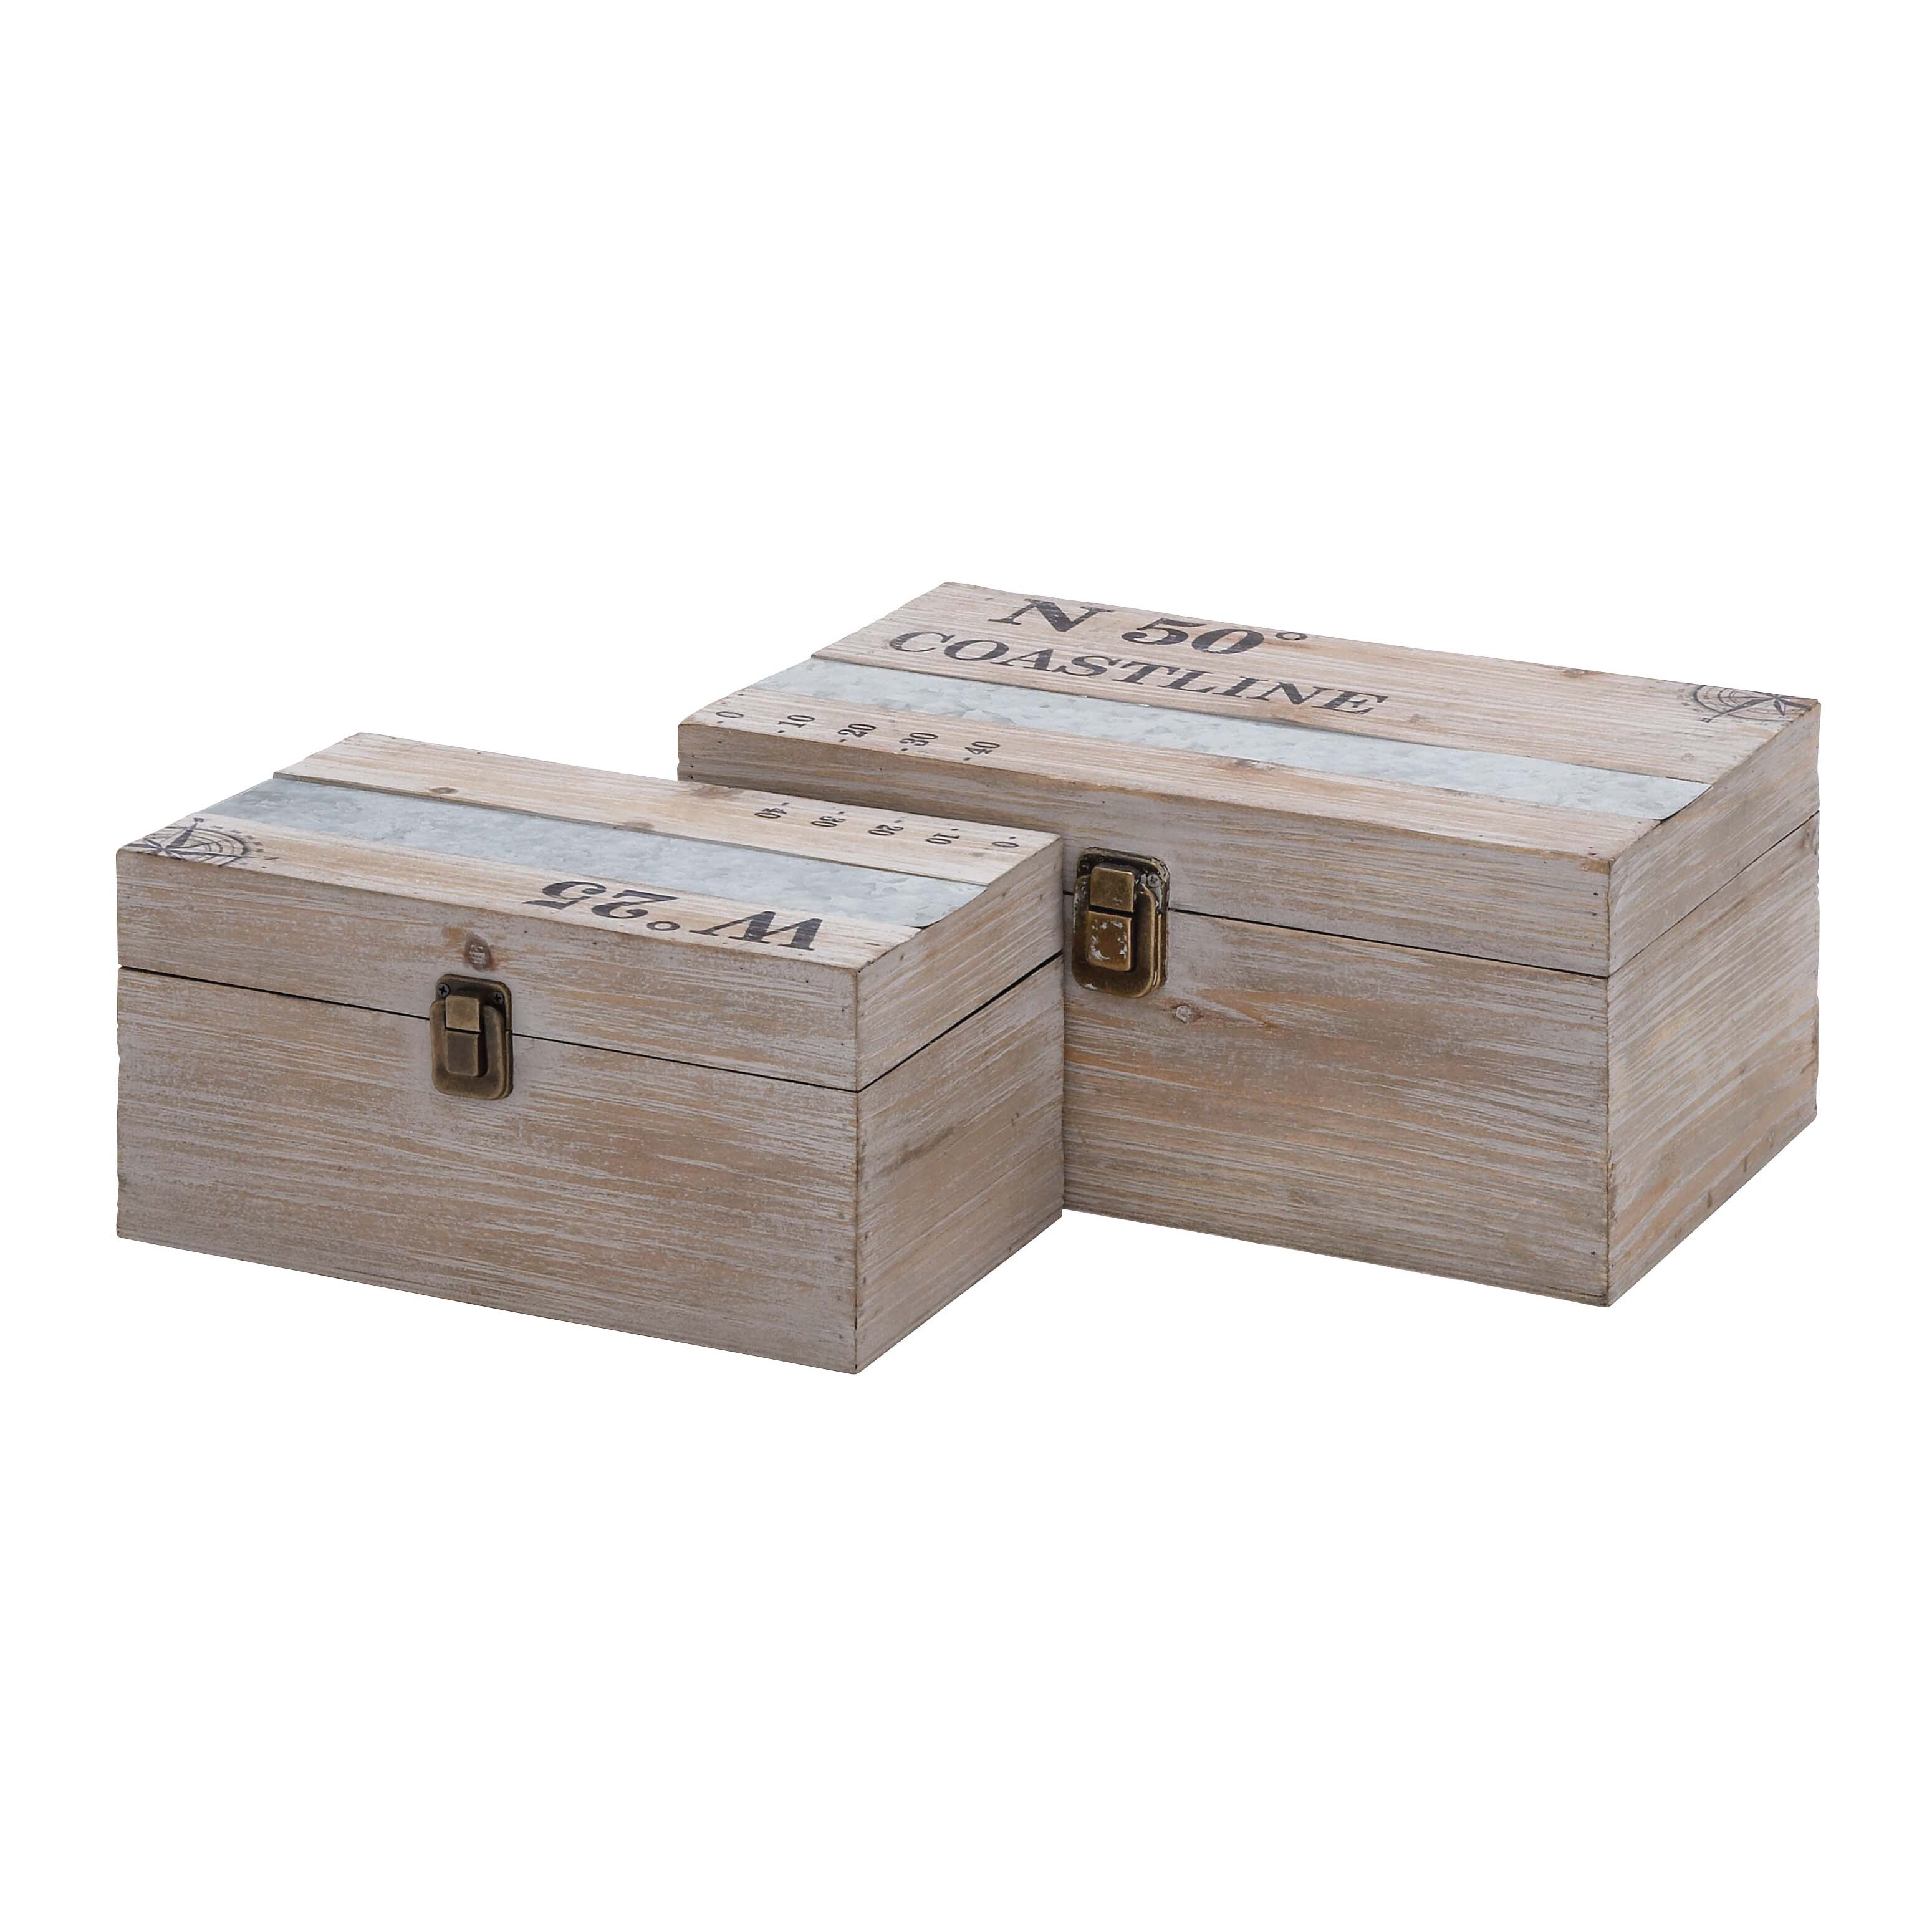 How To Make A Decorative Wooden Box: Woodland Imports 2 Piece Wood And Metal Box Set & Reviews